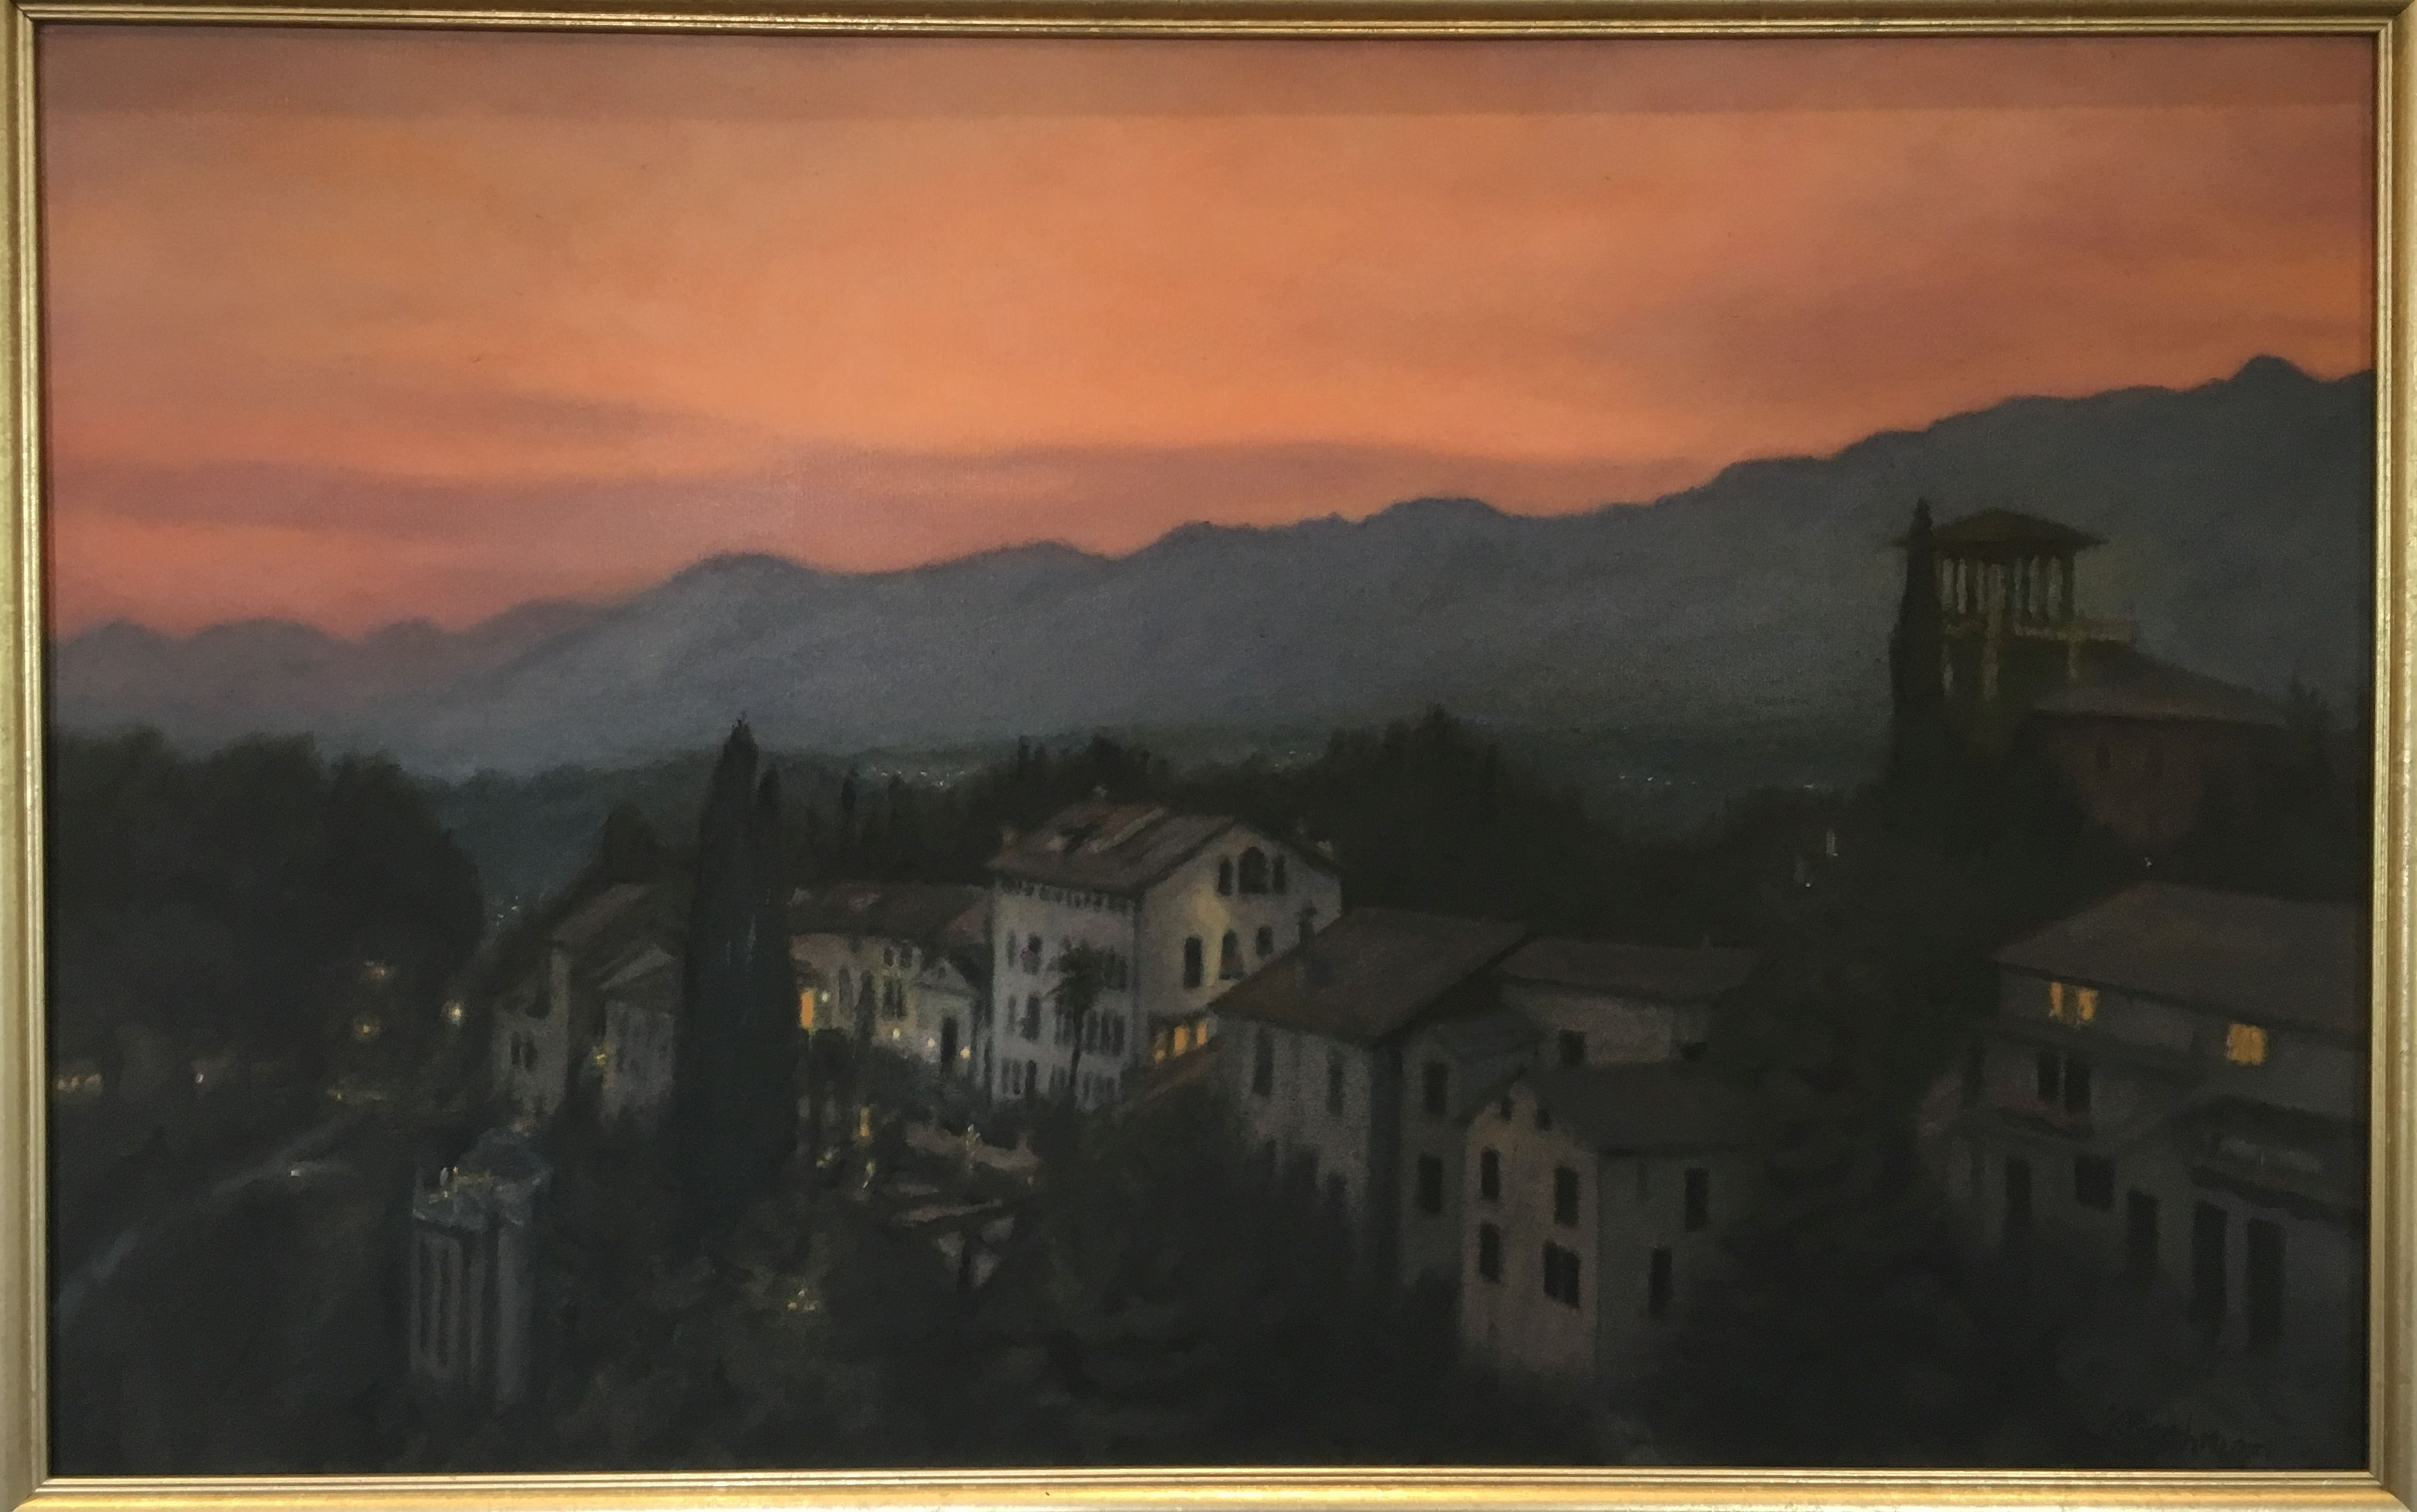 Asolo Sunset Ken Bachman Photo for East City Art by Eric Hope.